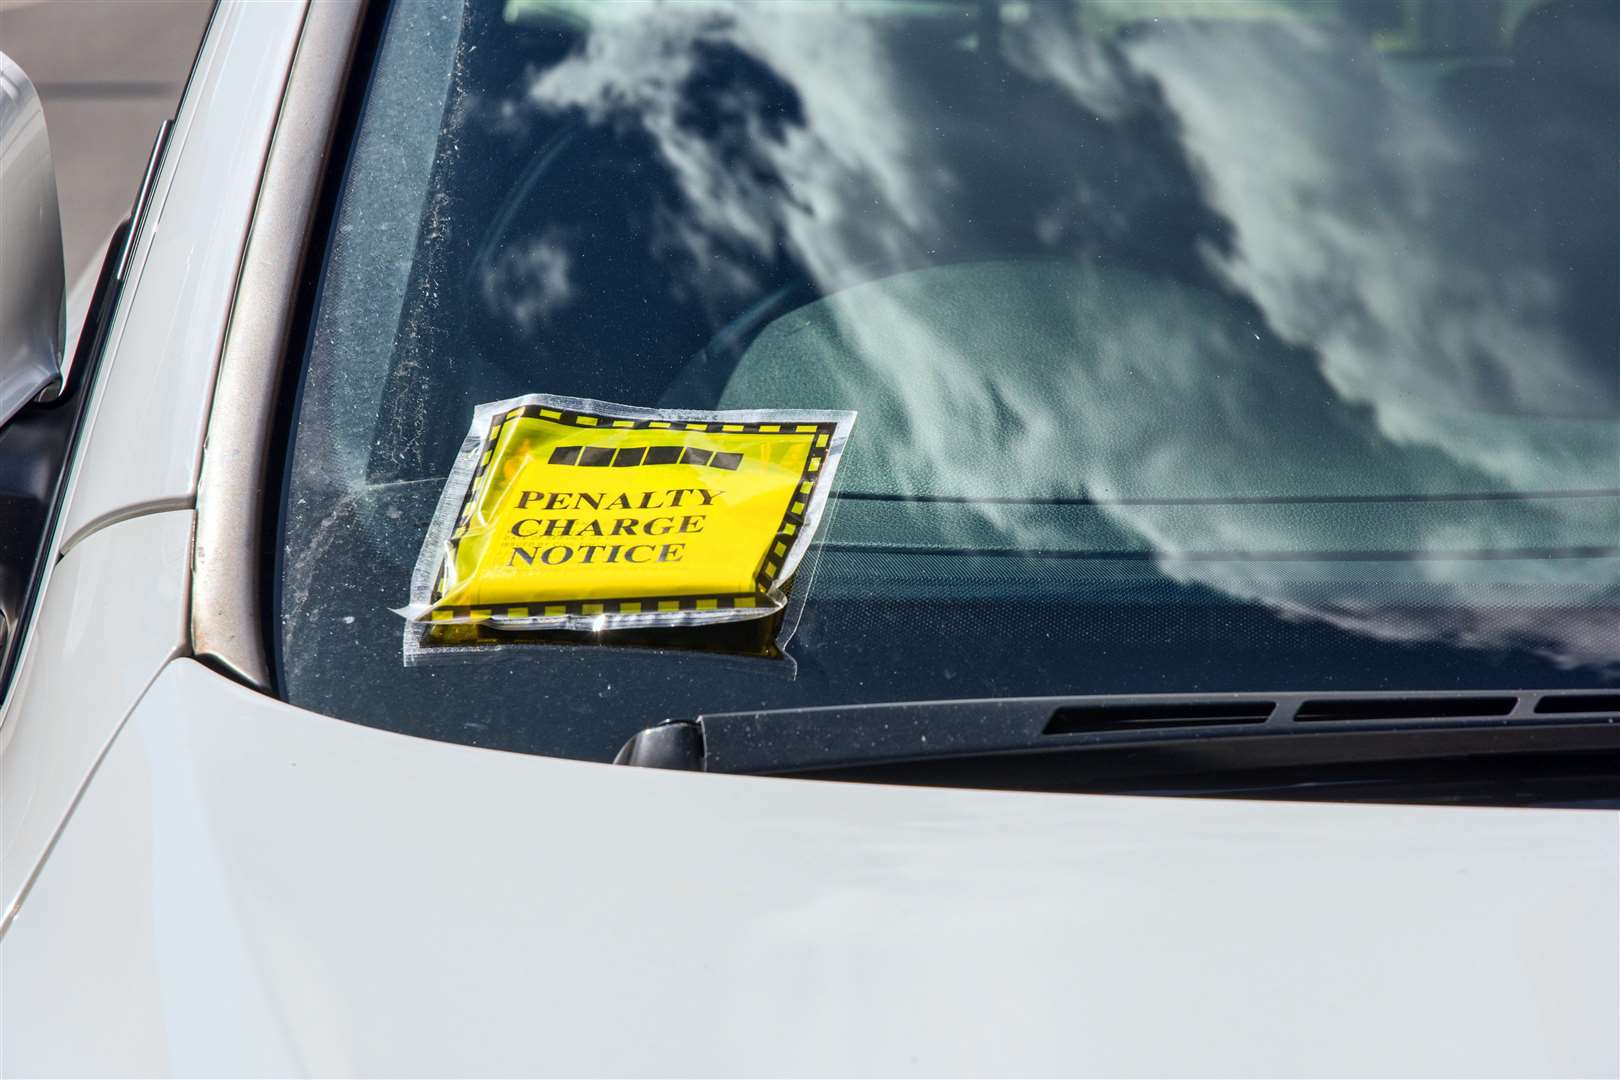 A Parking Ticket also called a Penalty Charge Notice glued to a car windscreen. The yellow ticket is the official notice issued by the Local Authority Traffic Warden for a vehicle which is contravening a parking restriction or regulation. (15120078)